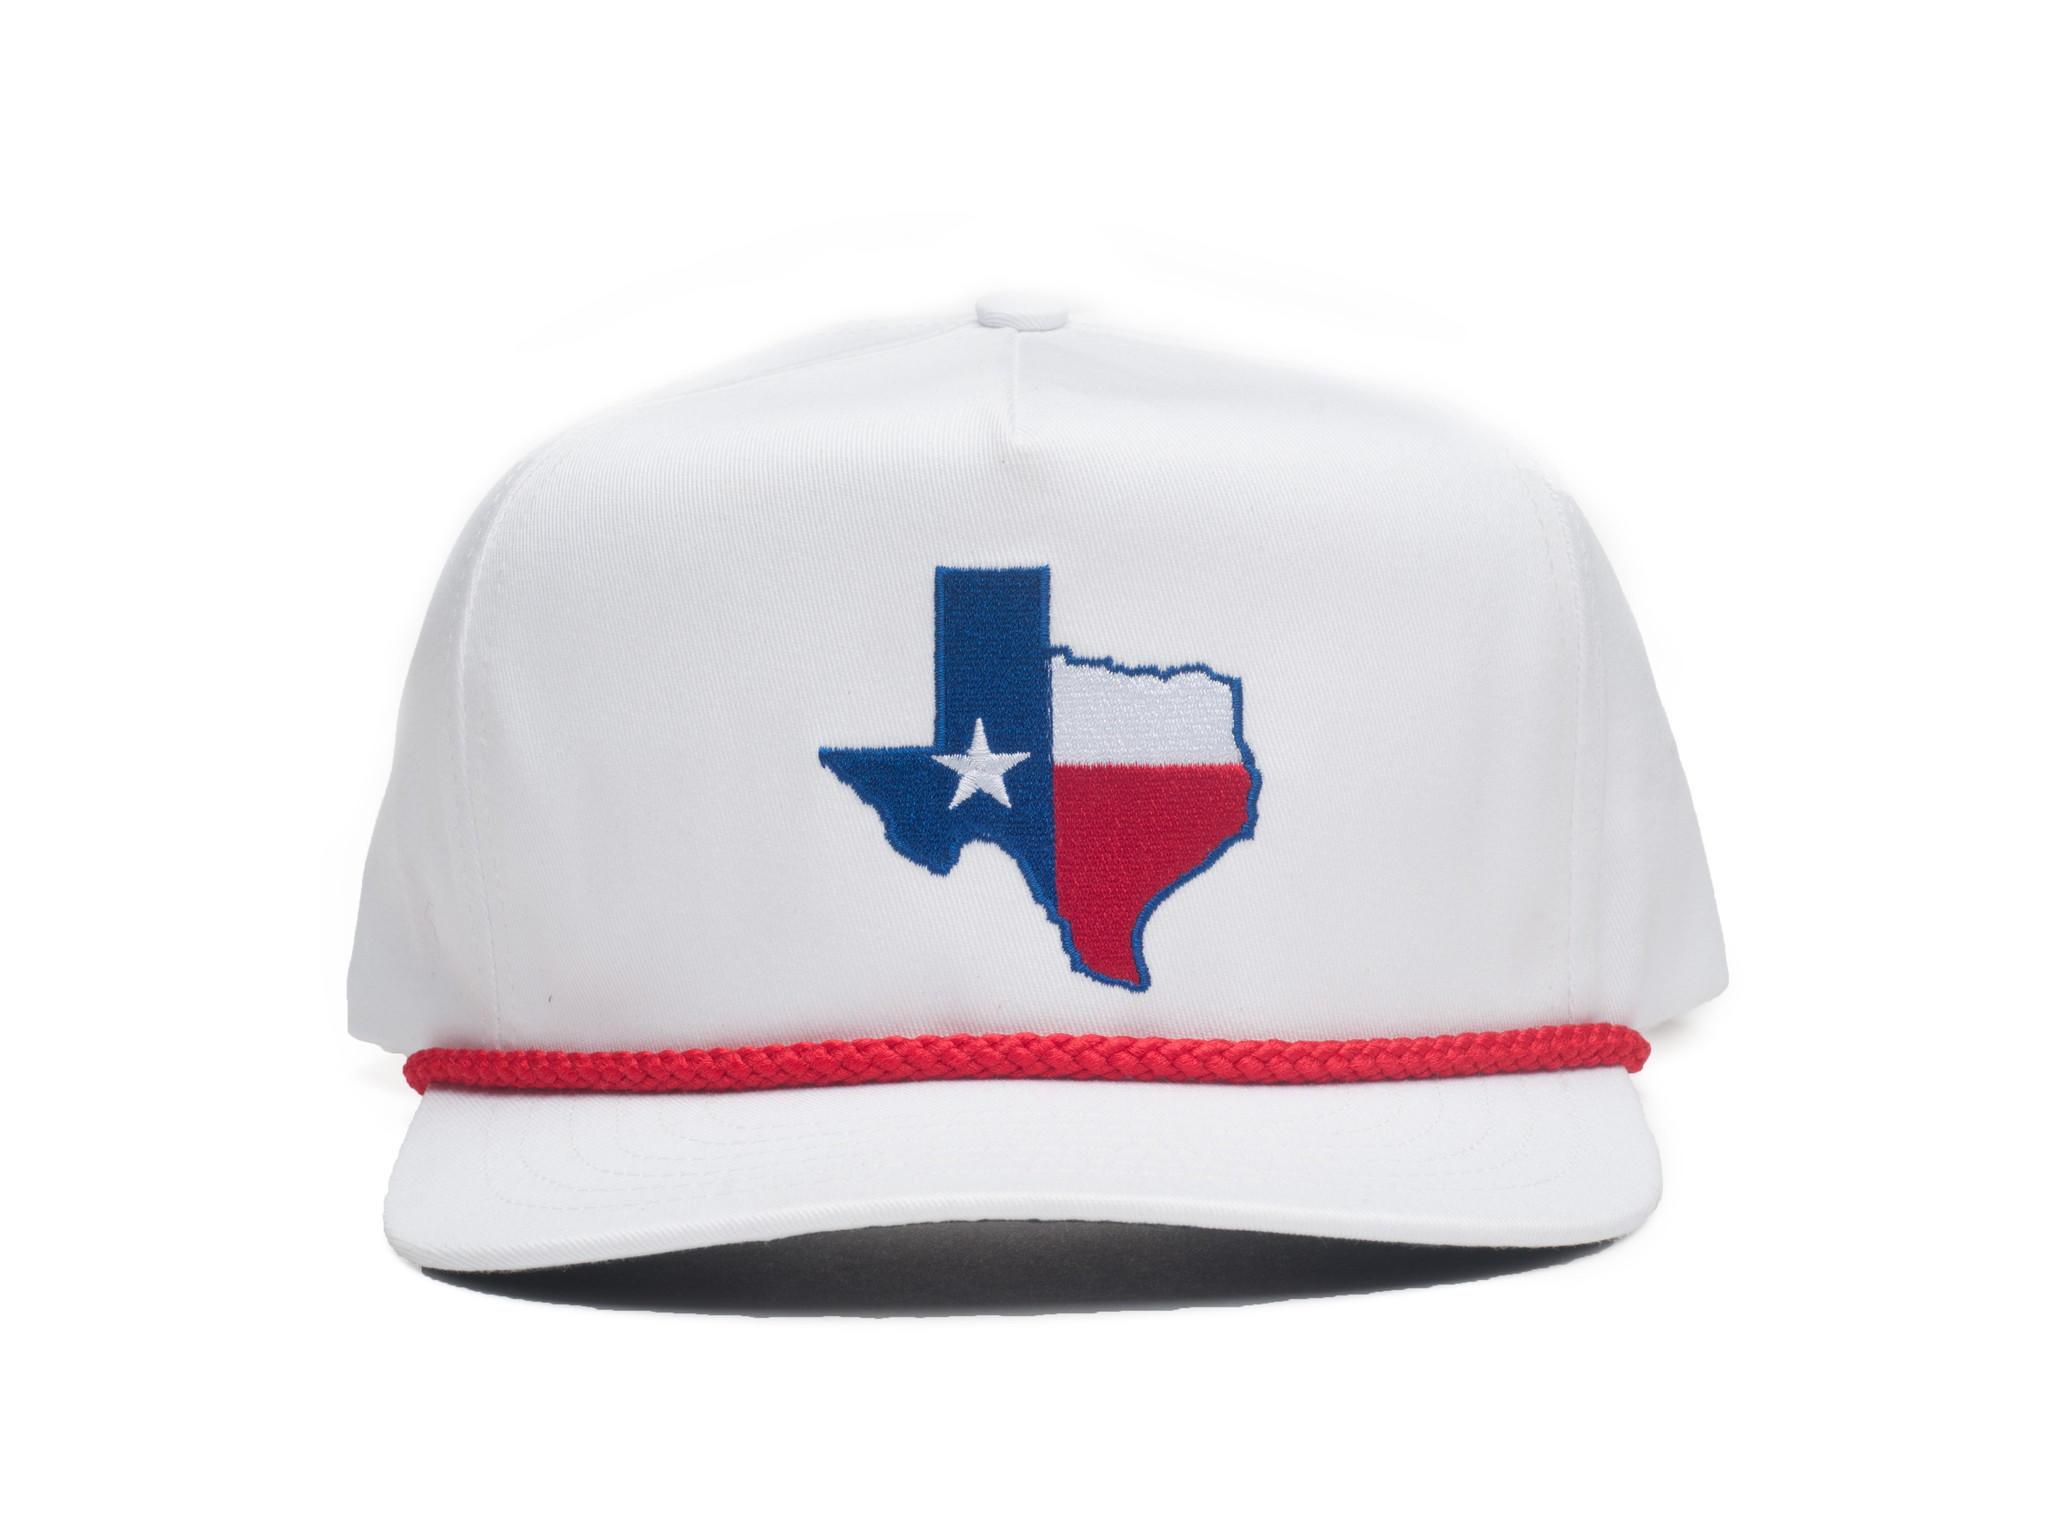 The Texas Rope Hat From Campus Retro Gifts